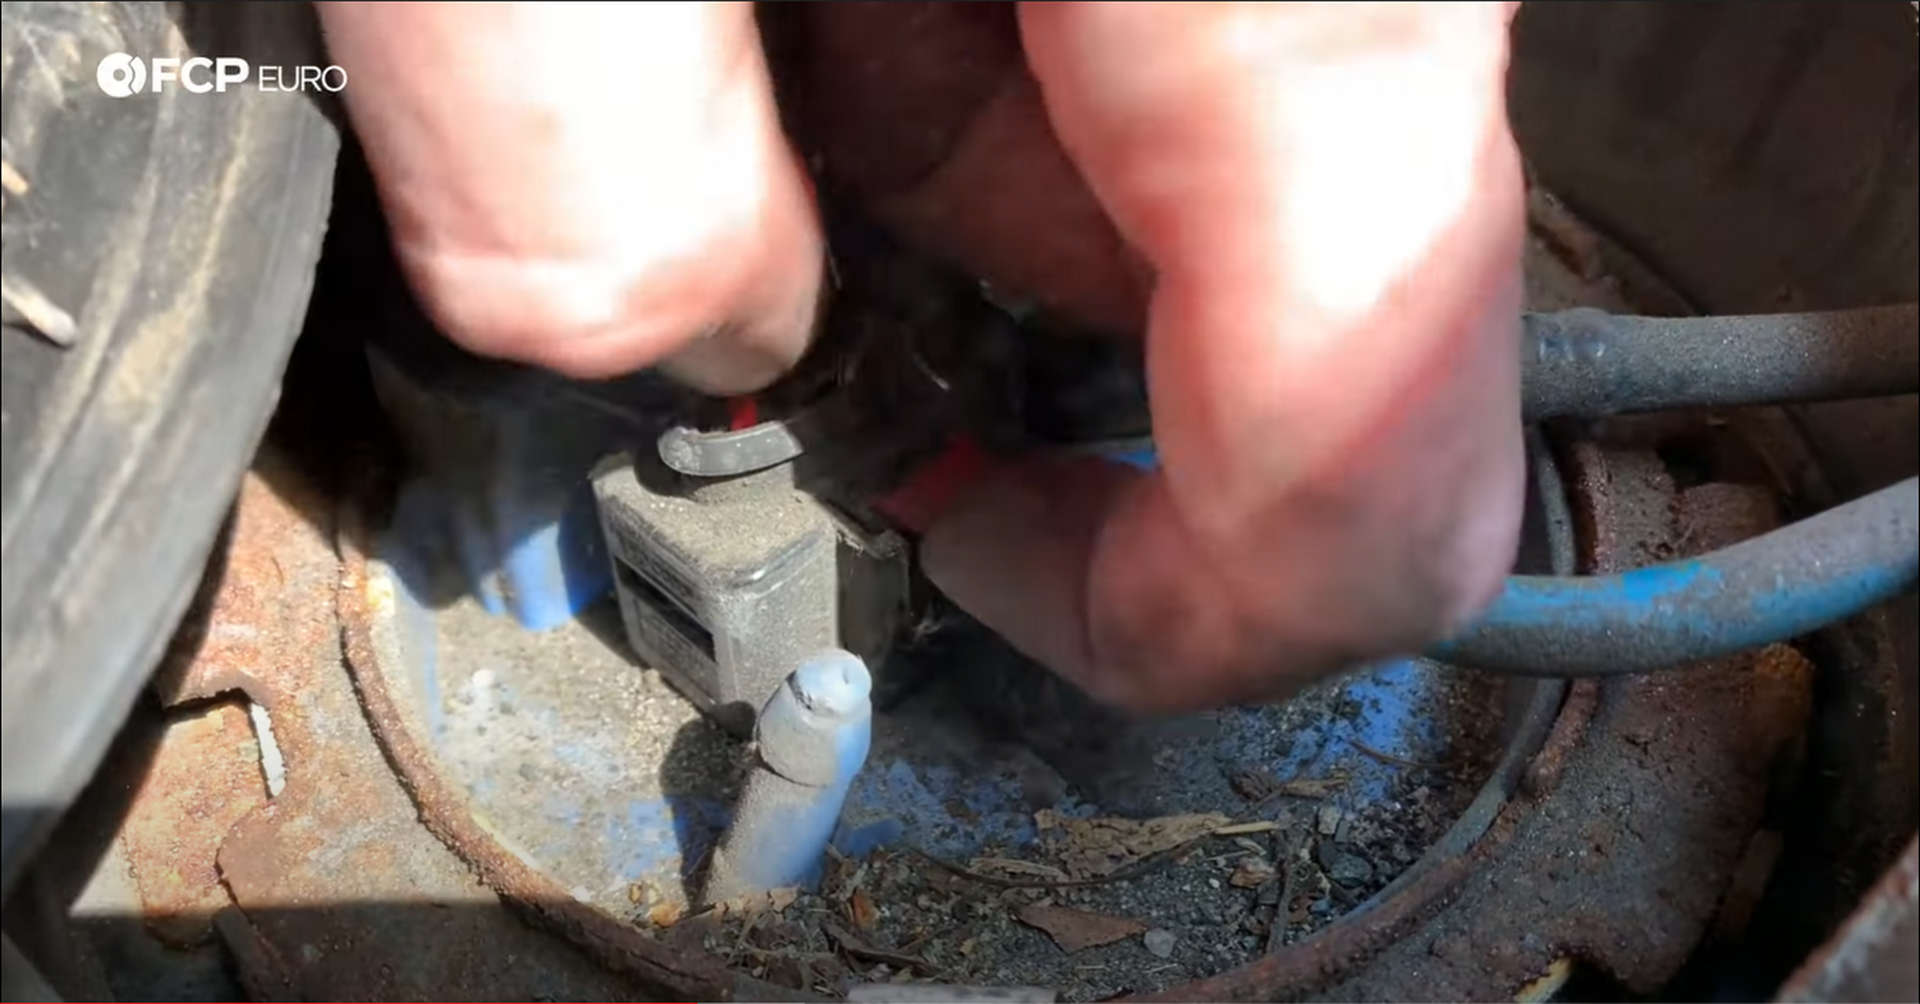 DIY VW GTI Fuel Pump removing the controller plug